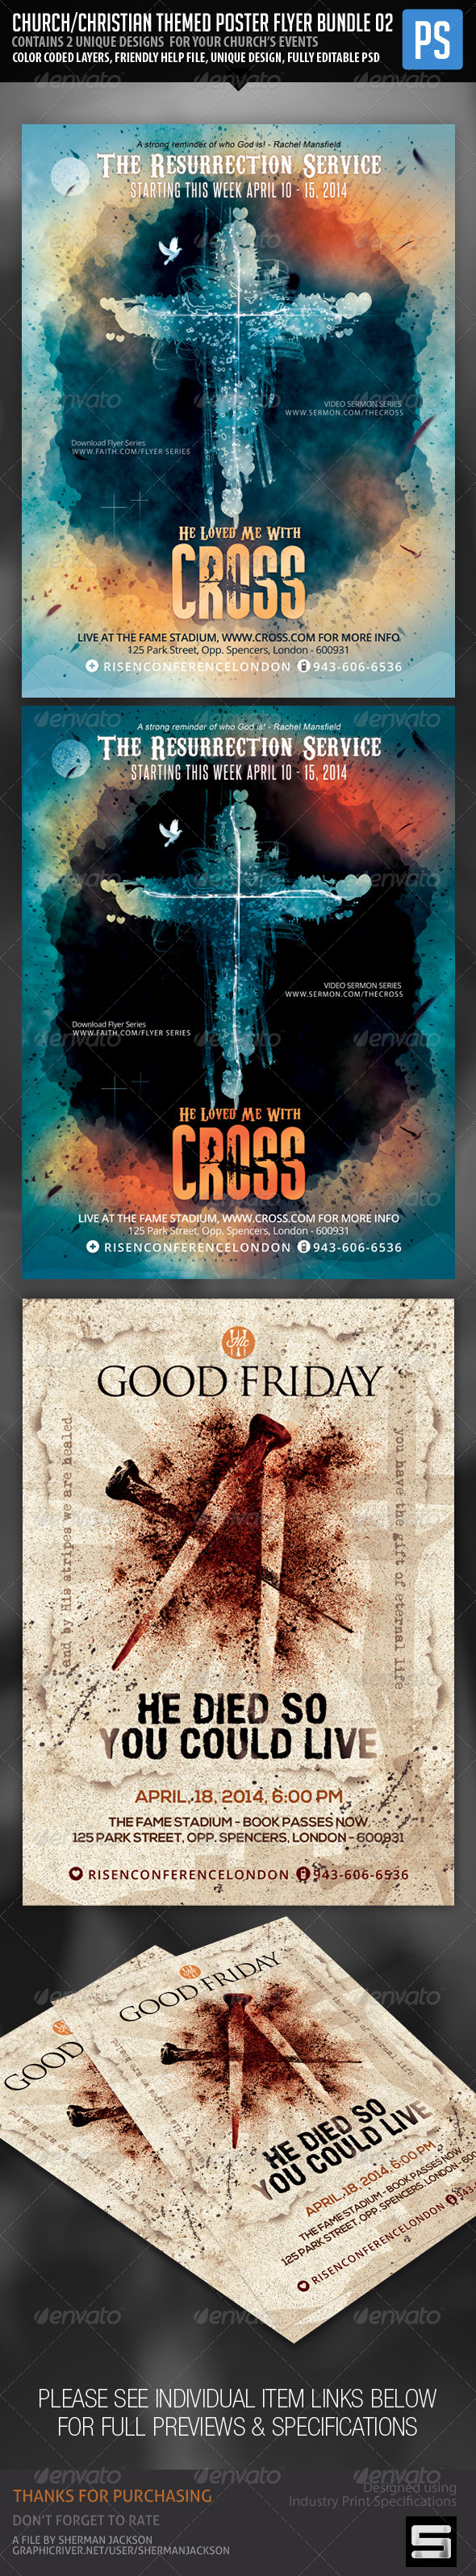 GraphicRiver Church Christian Themed Poster Flyer Bundle#2 7272100